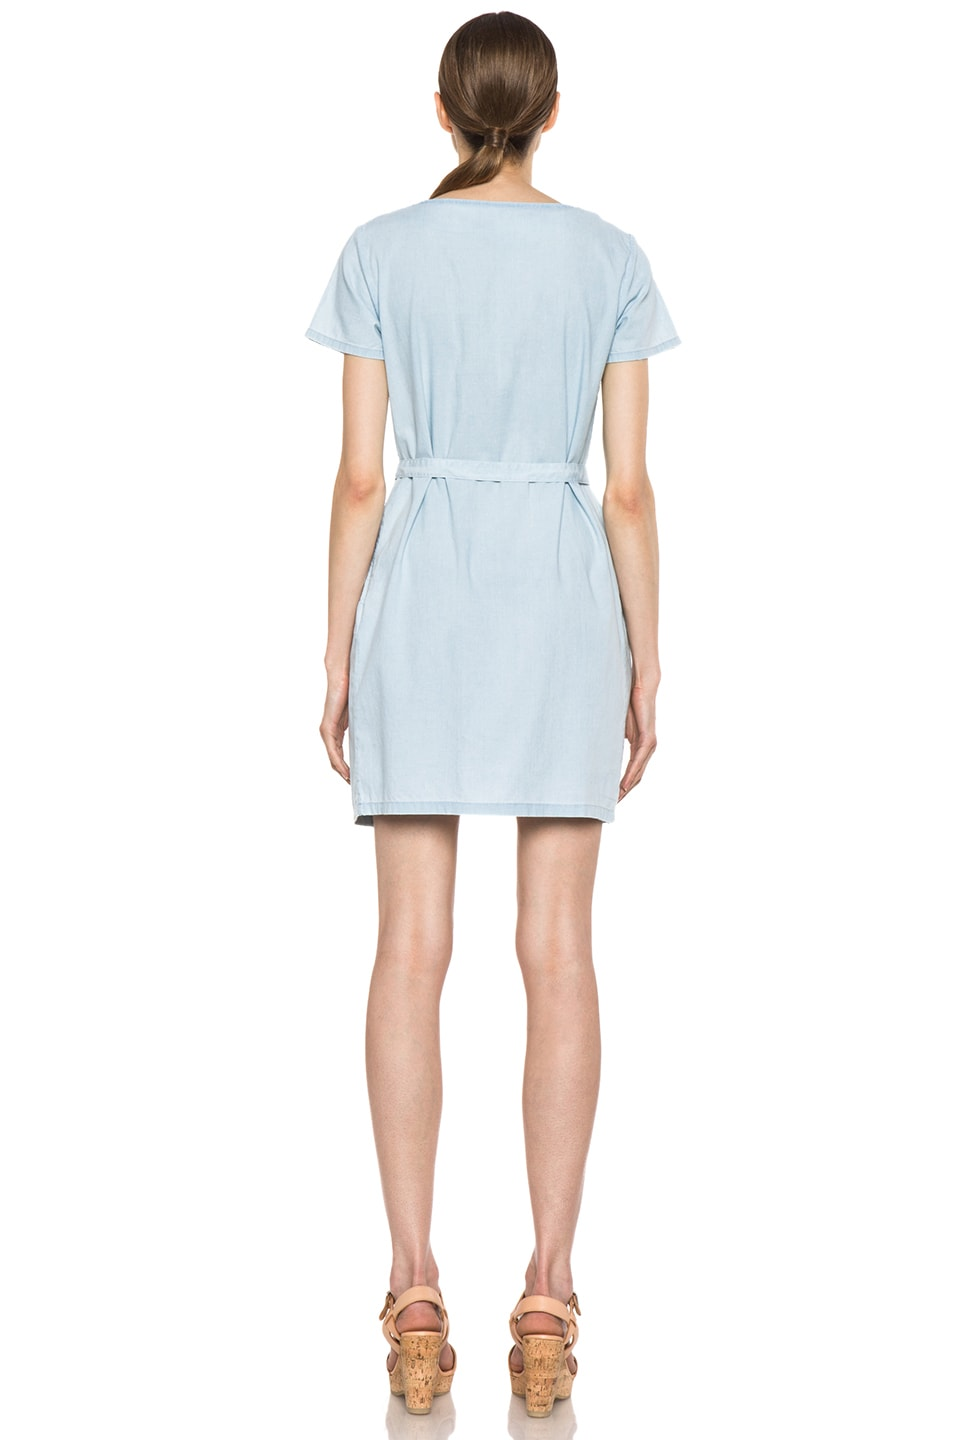 Image 4 of A.P.C. Chambray Dress in Bleu Ciel